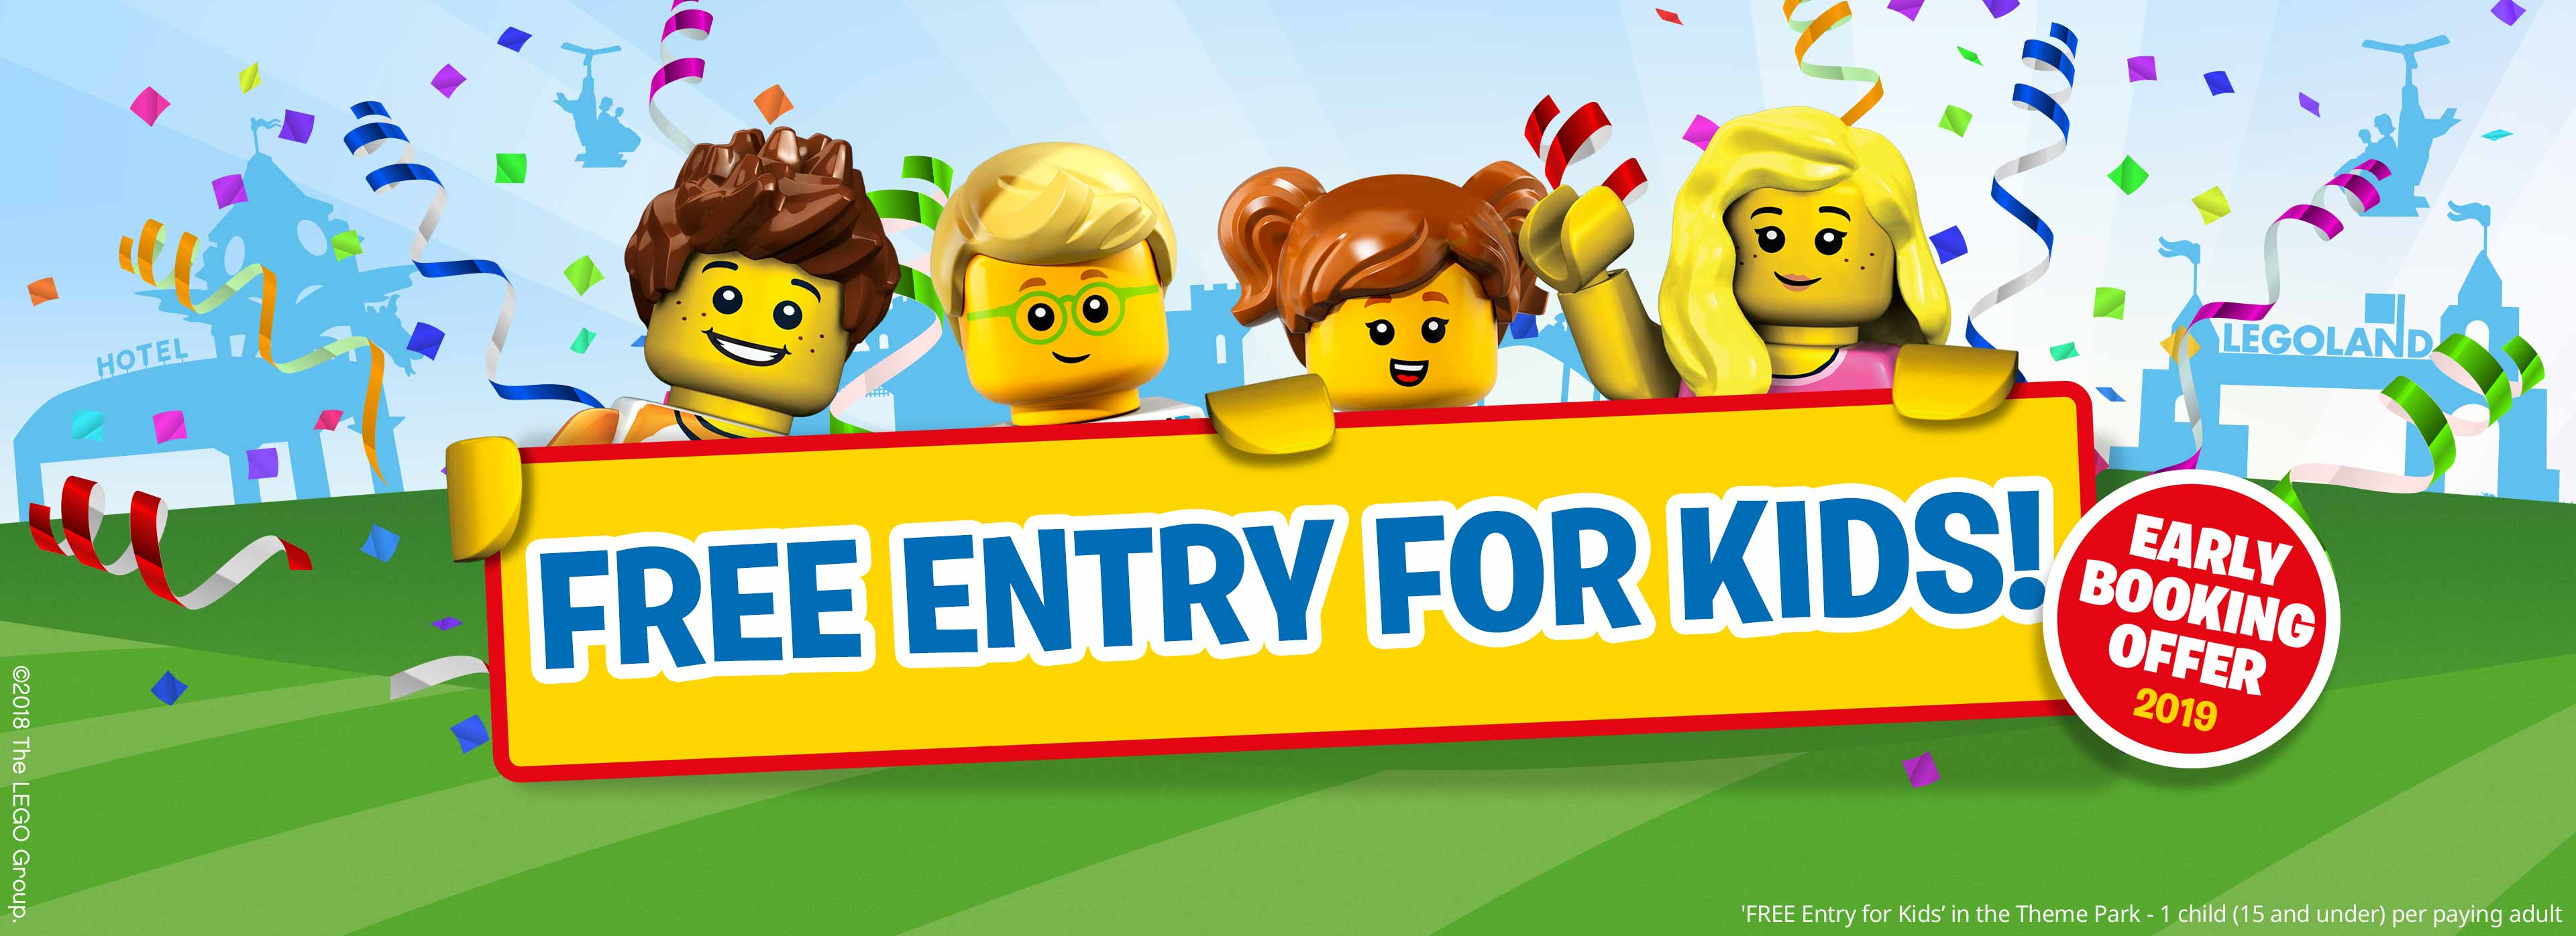 Kids Play FREE in 2019 with LEGOLAND HOLIDAYS